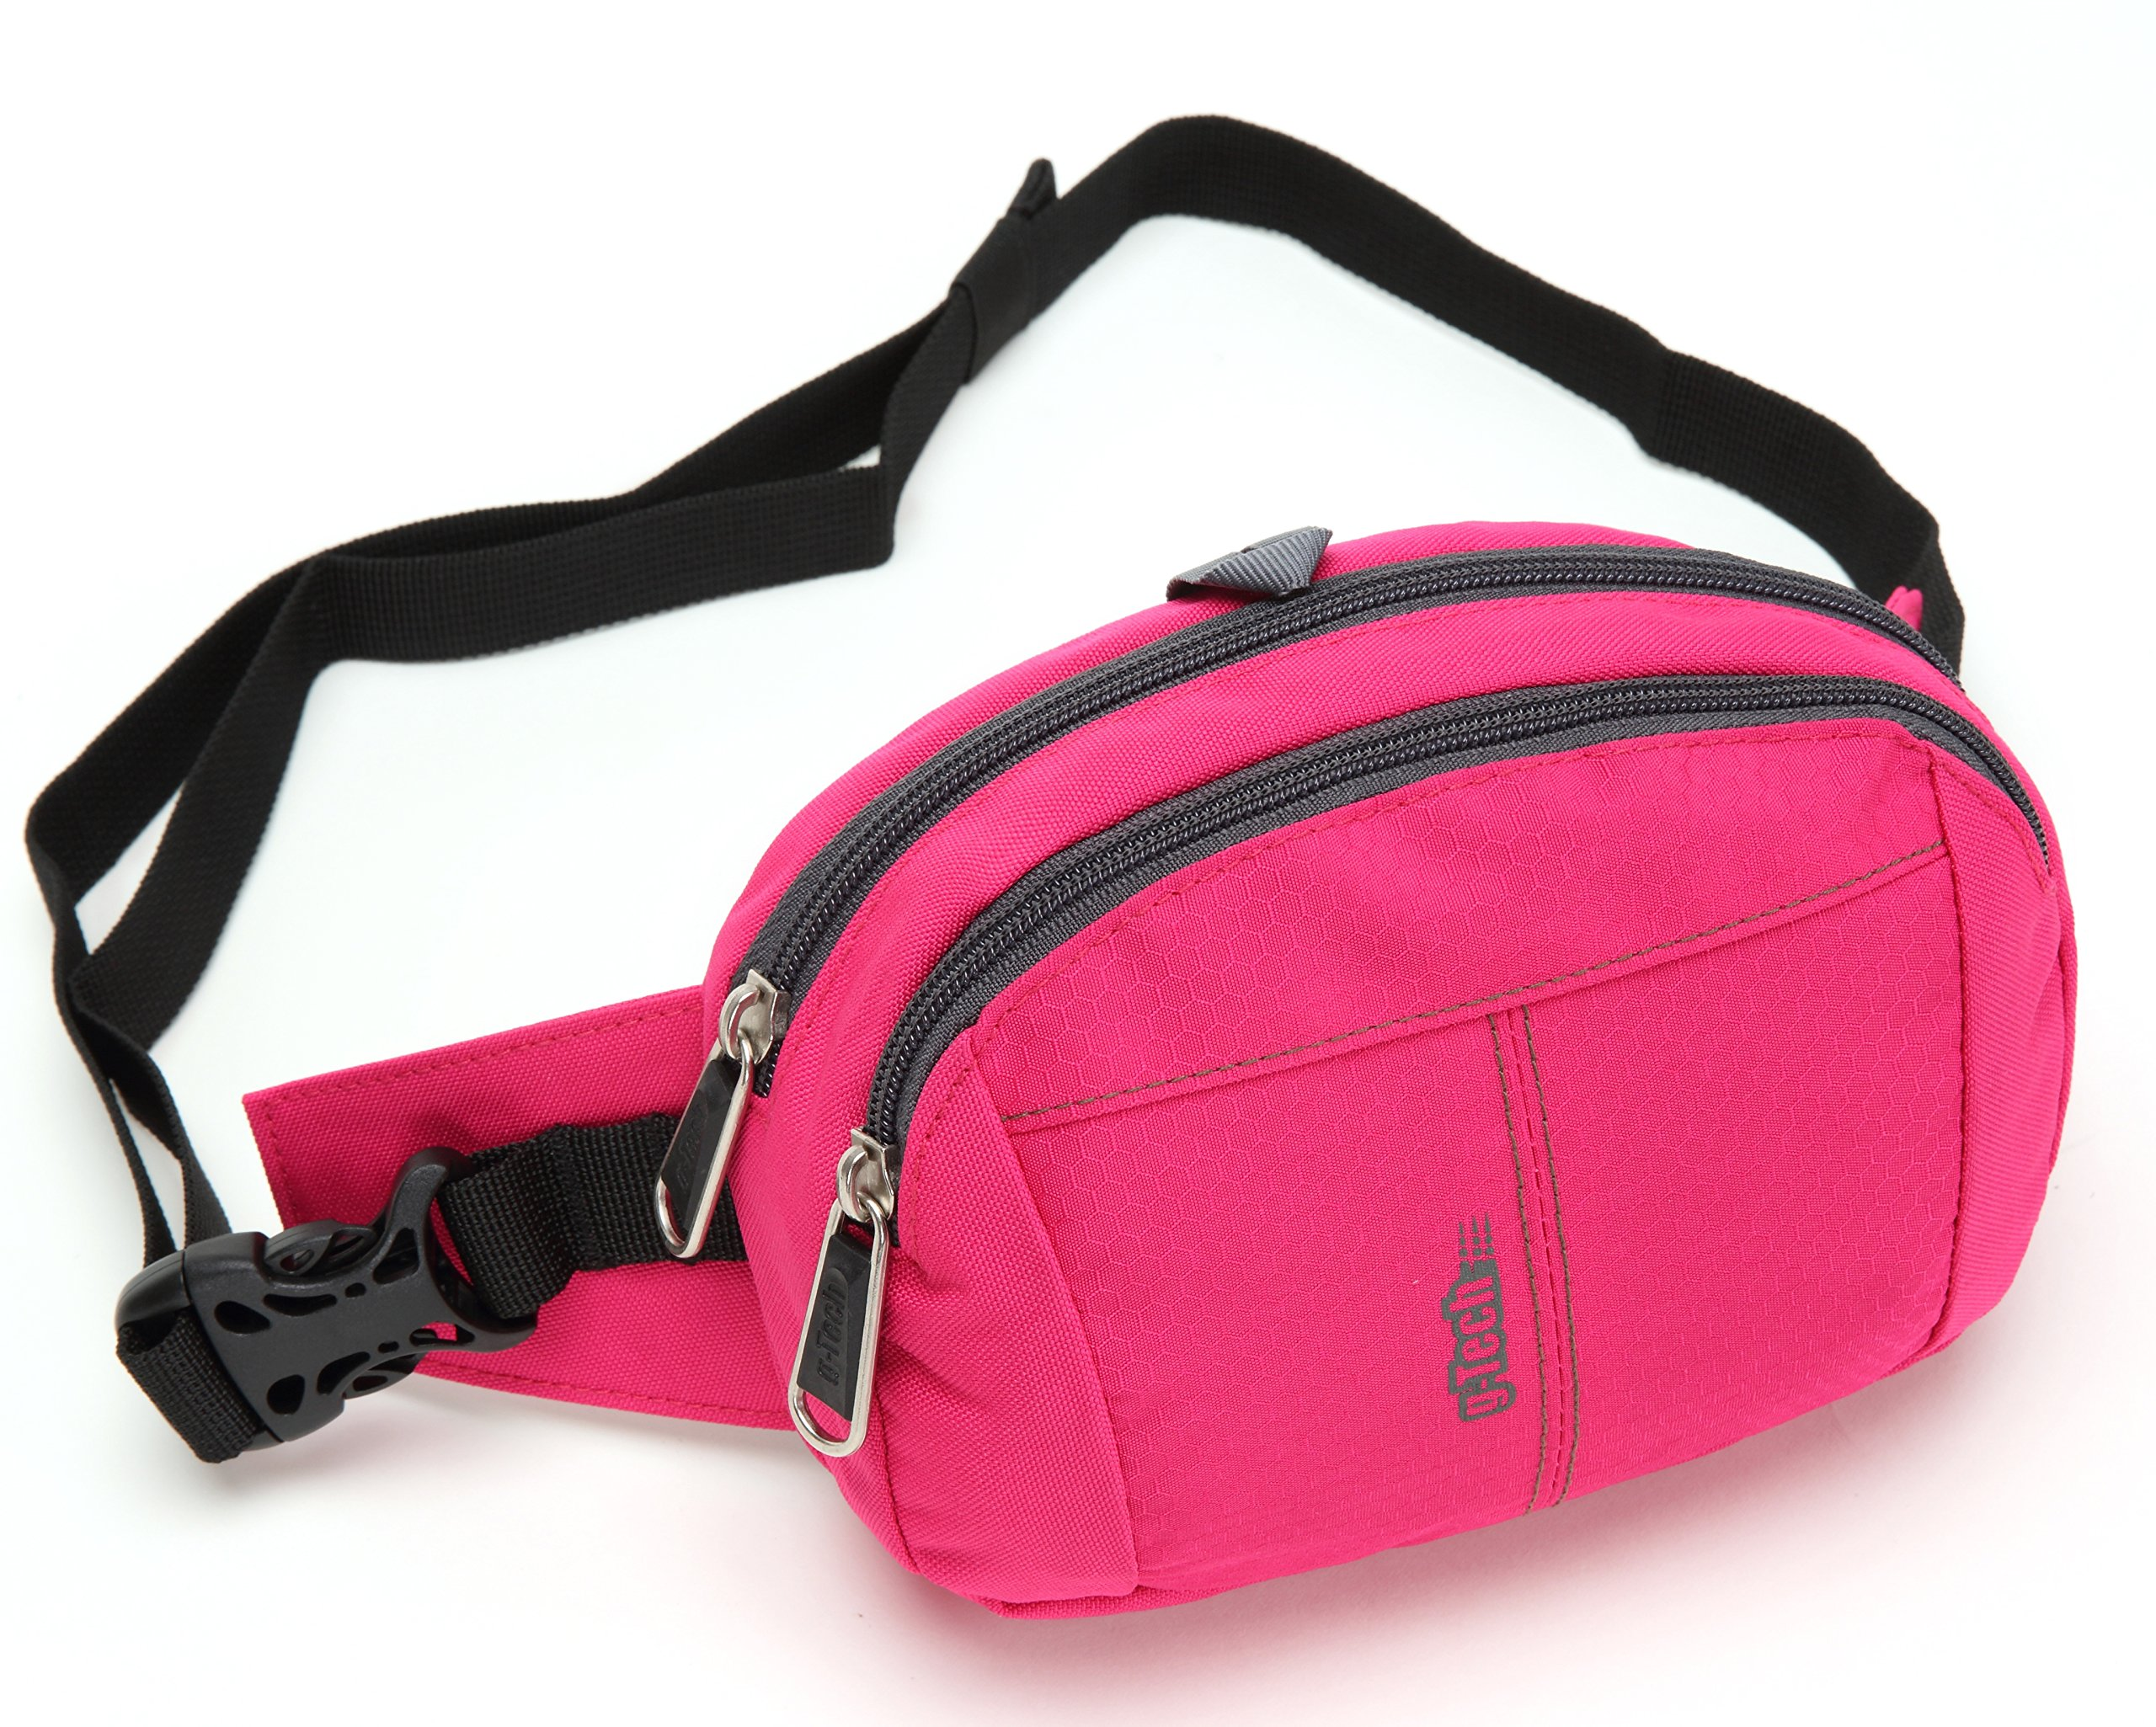 Fanny Pack Bag for Men Women Children Unisex Travel Waist Bag Pack Small Bumbags With Extra Waist Size (Pink)